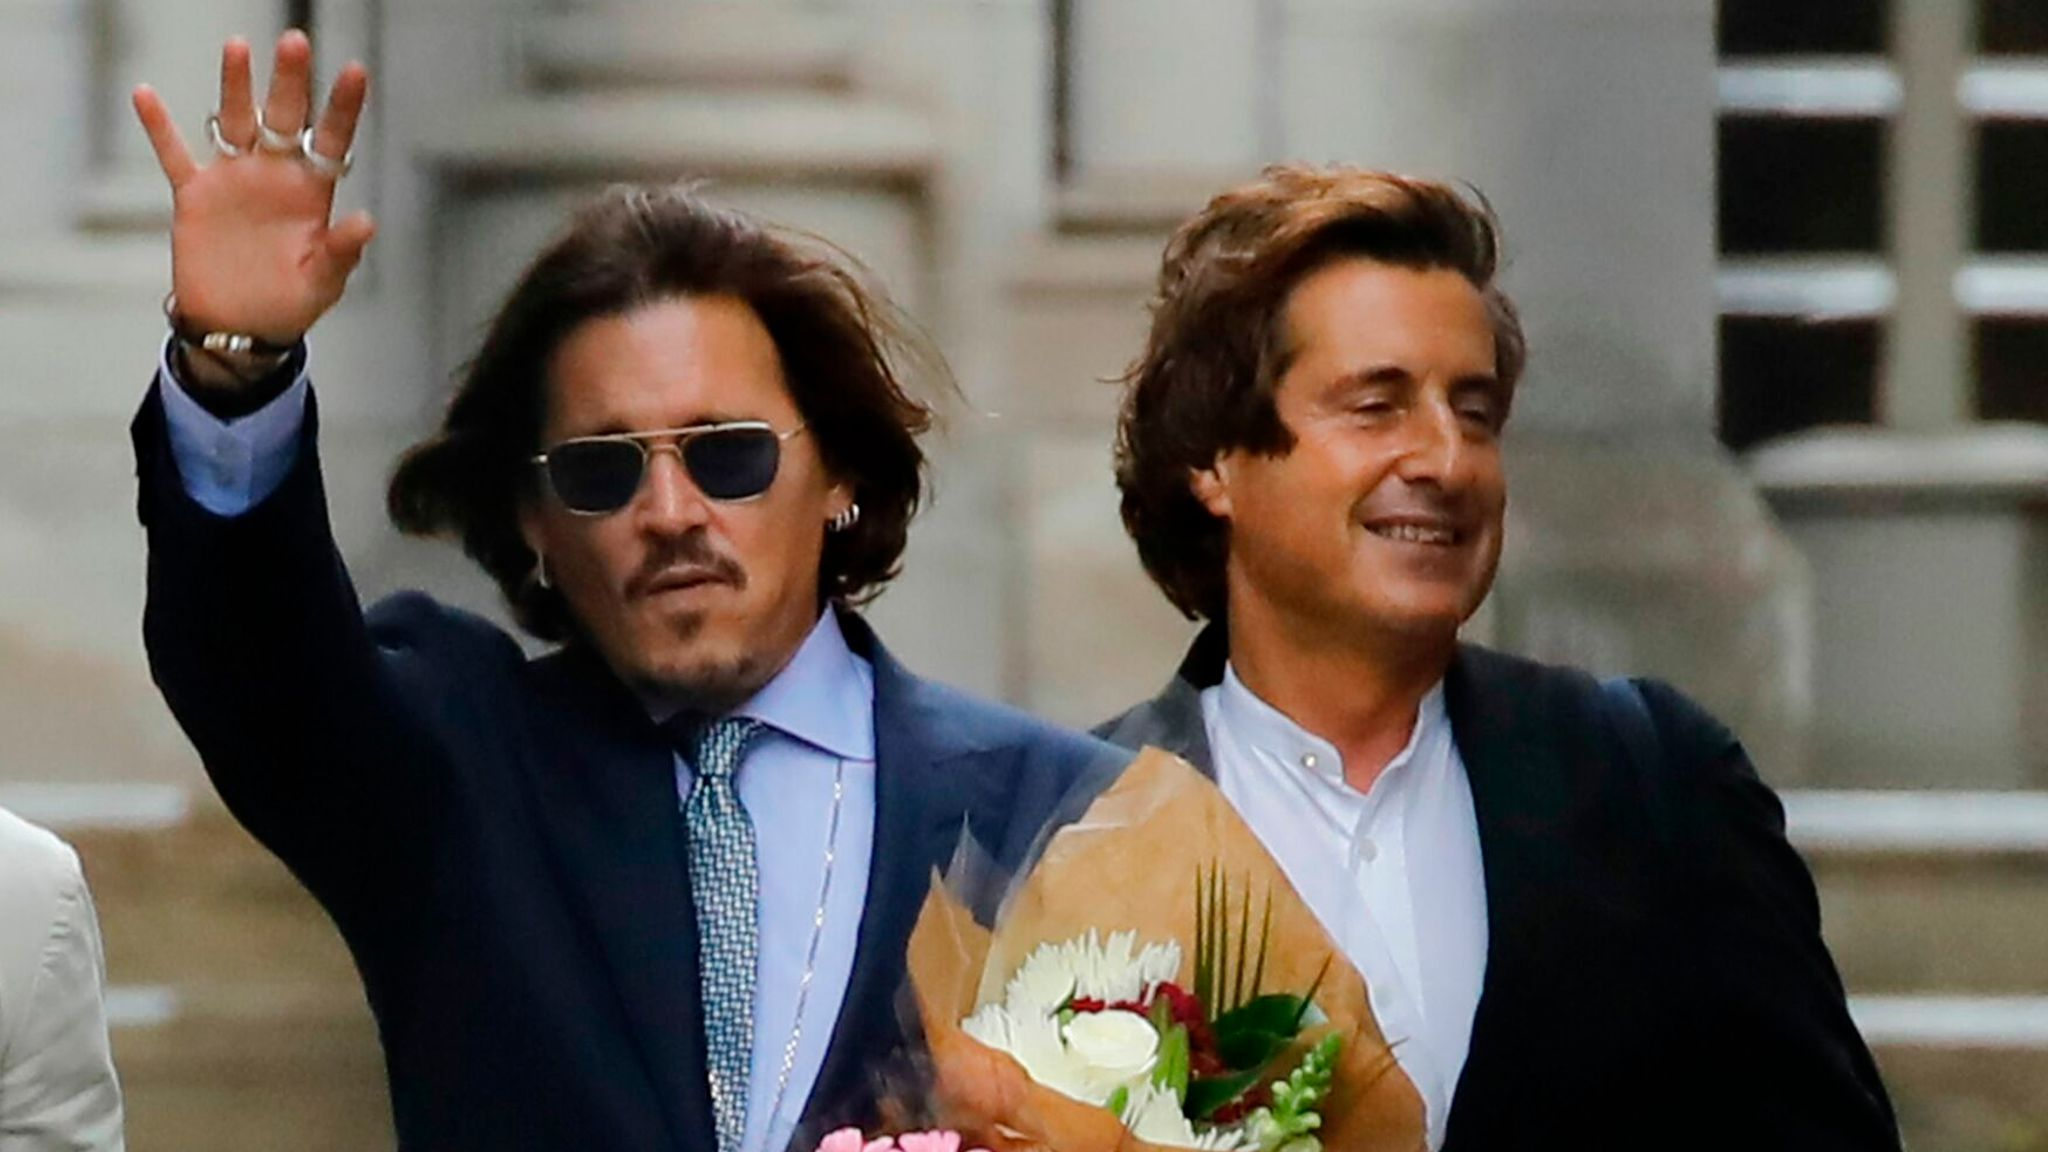 Depp was last in court on Friday, but is expected today for the last day of the trial. Pictured with his lawyer David Sherborne